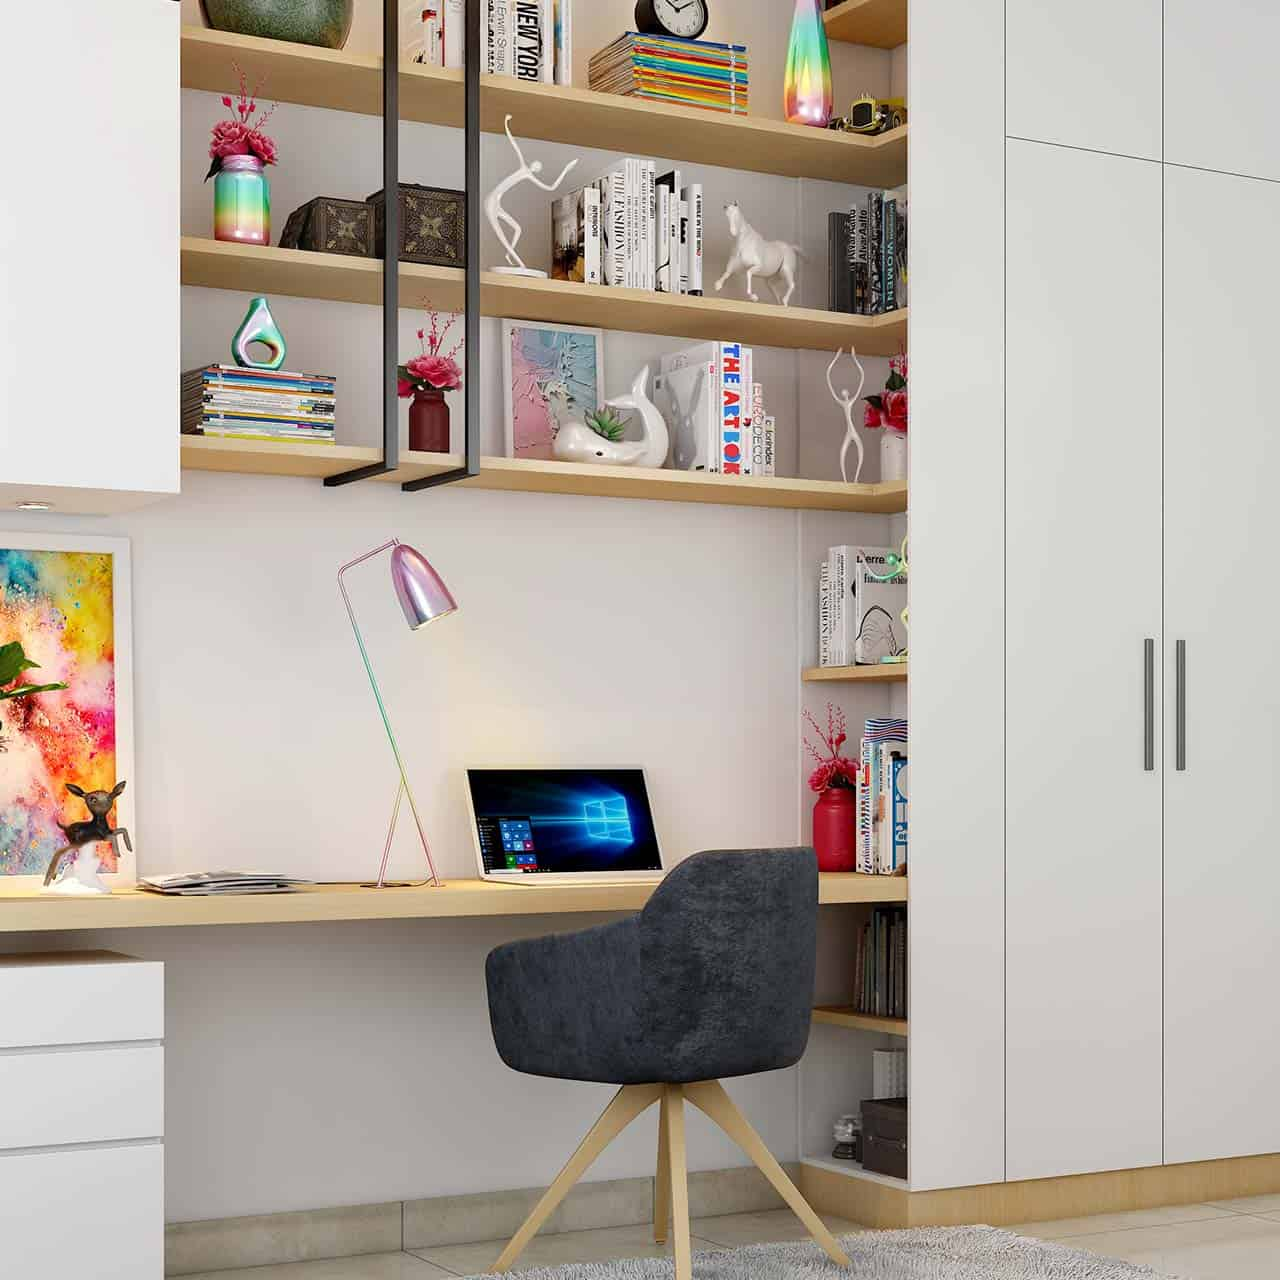 Accessories and Lighting Ideas for Study Room Design